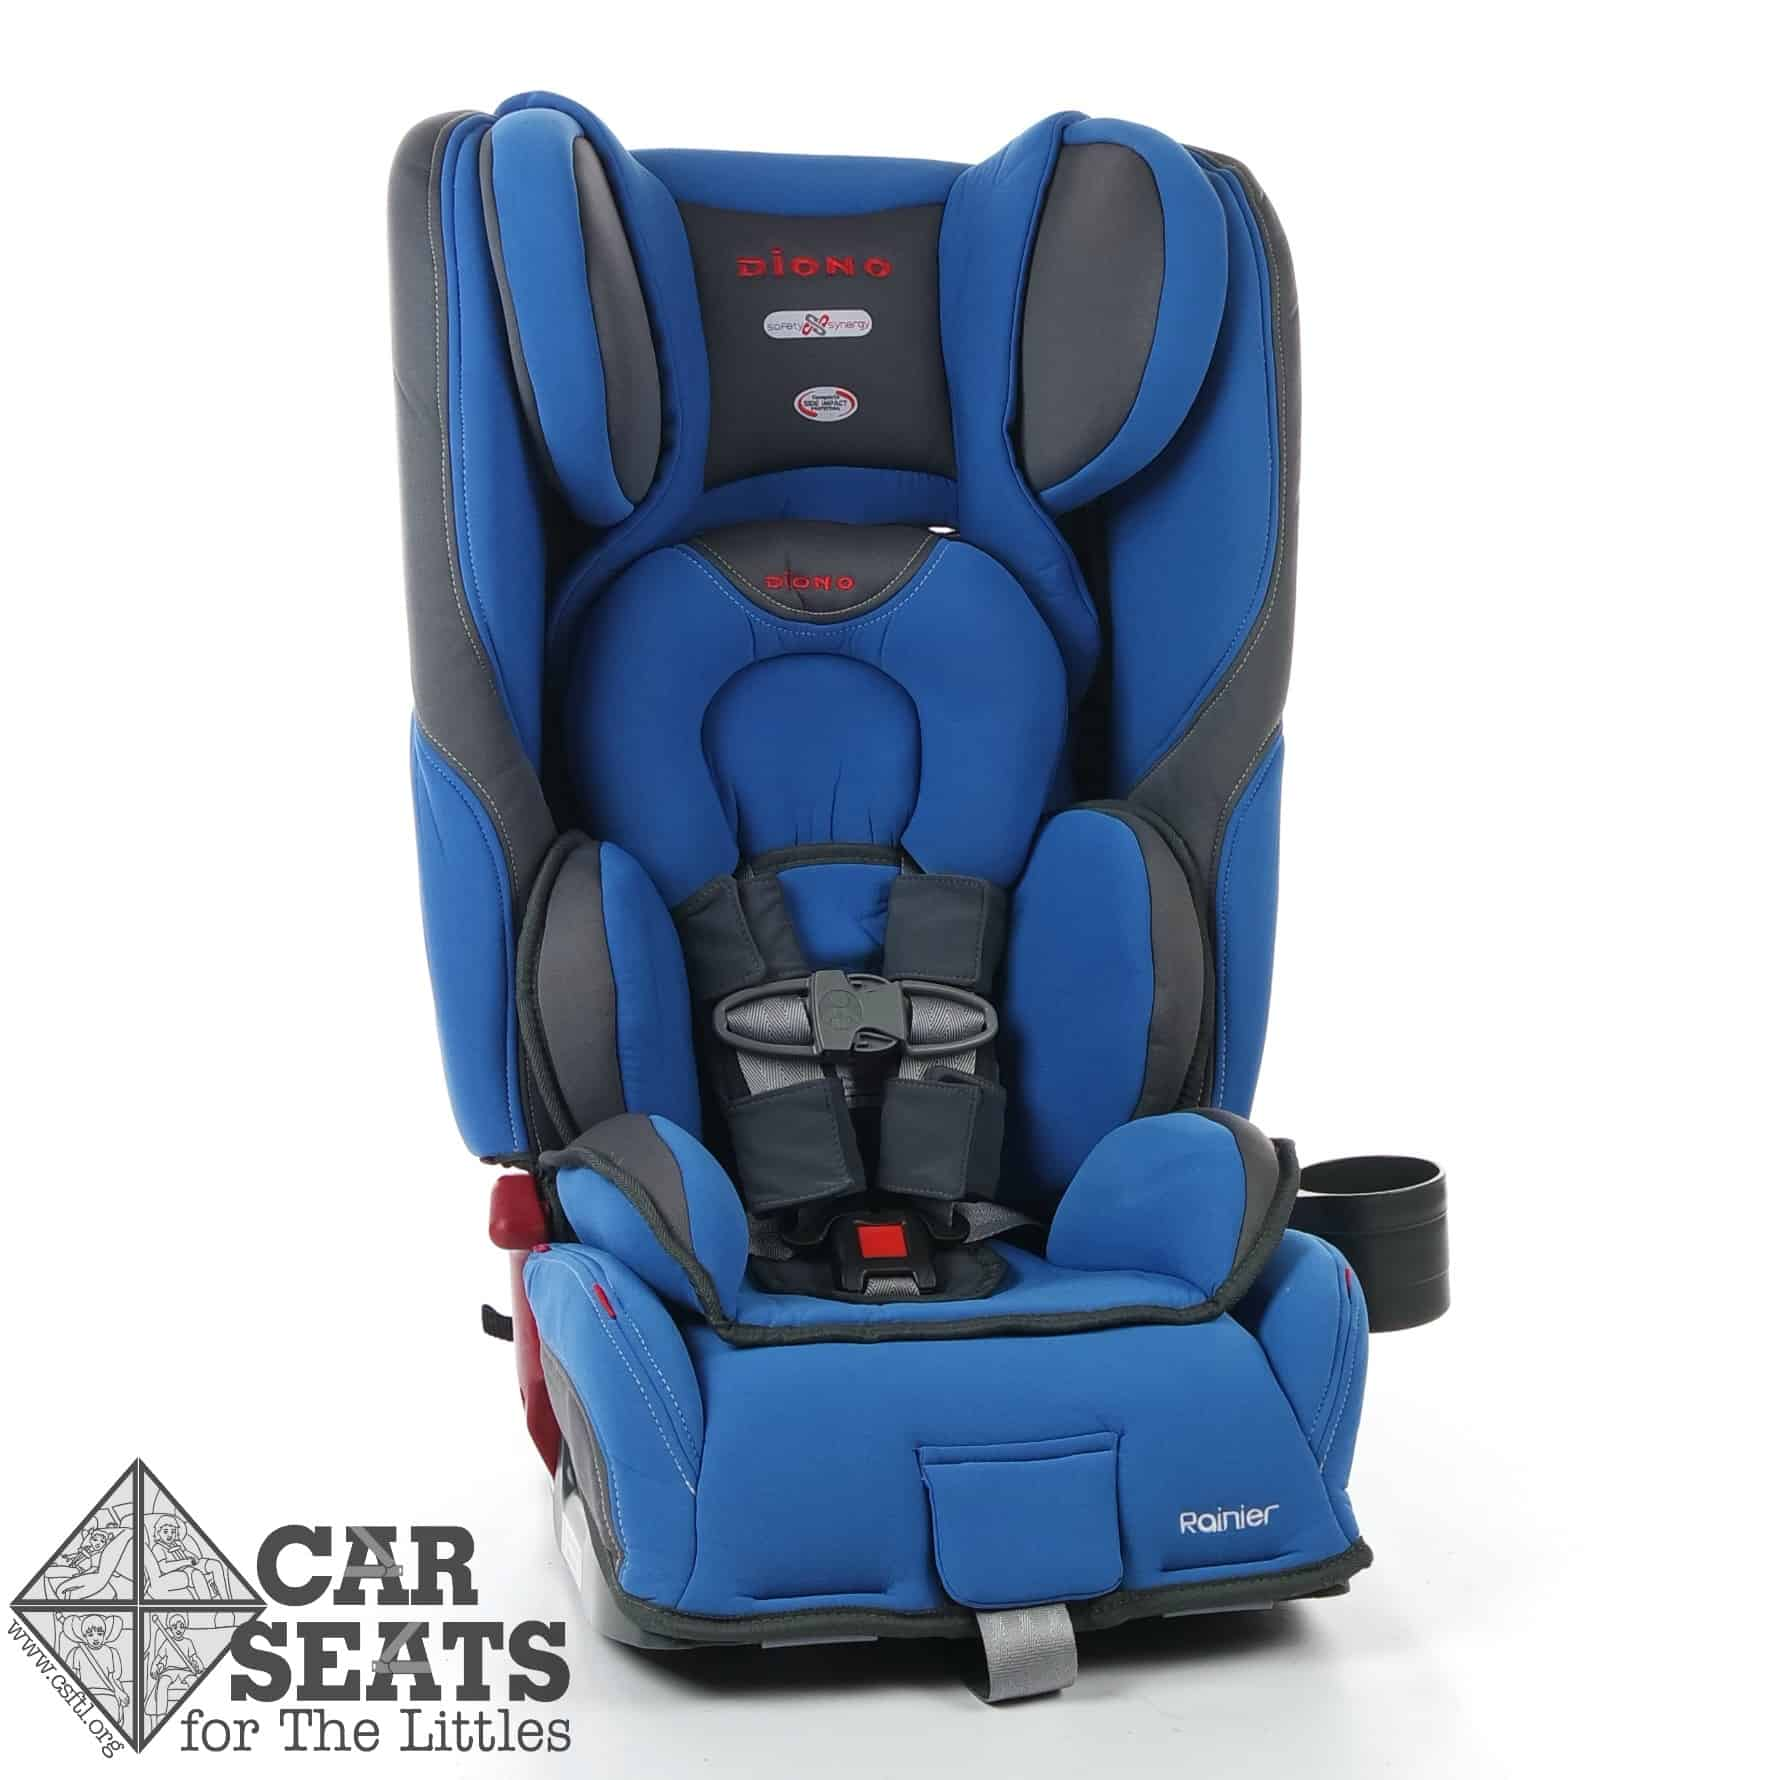 Narrow Booster Seat >> Diono Rainier Review - Car Seats For The Littles